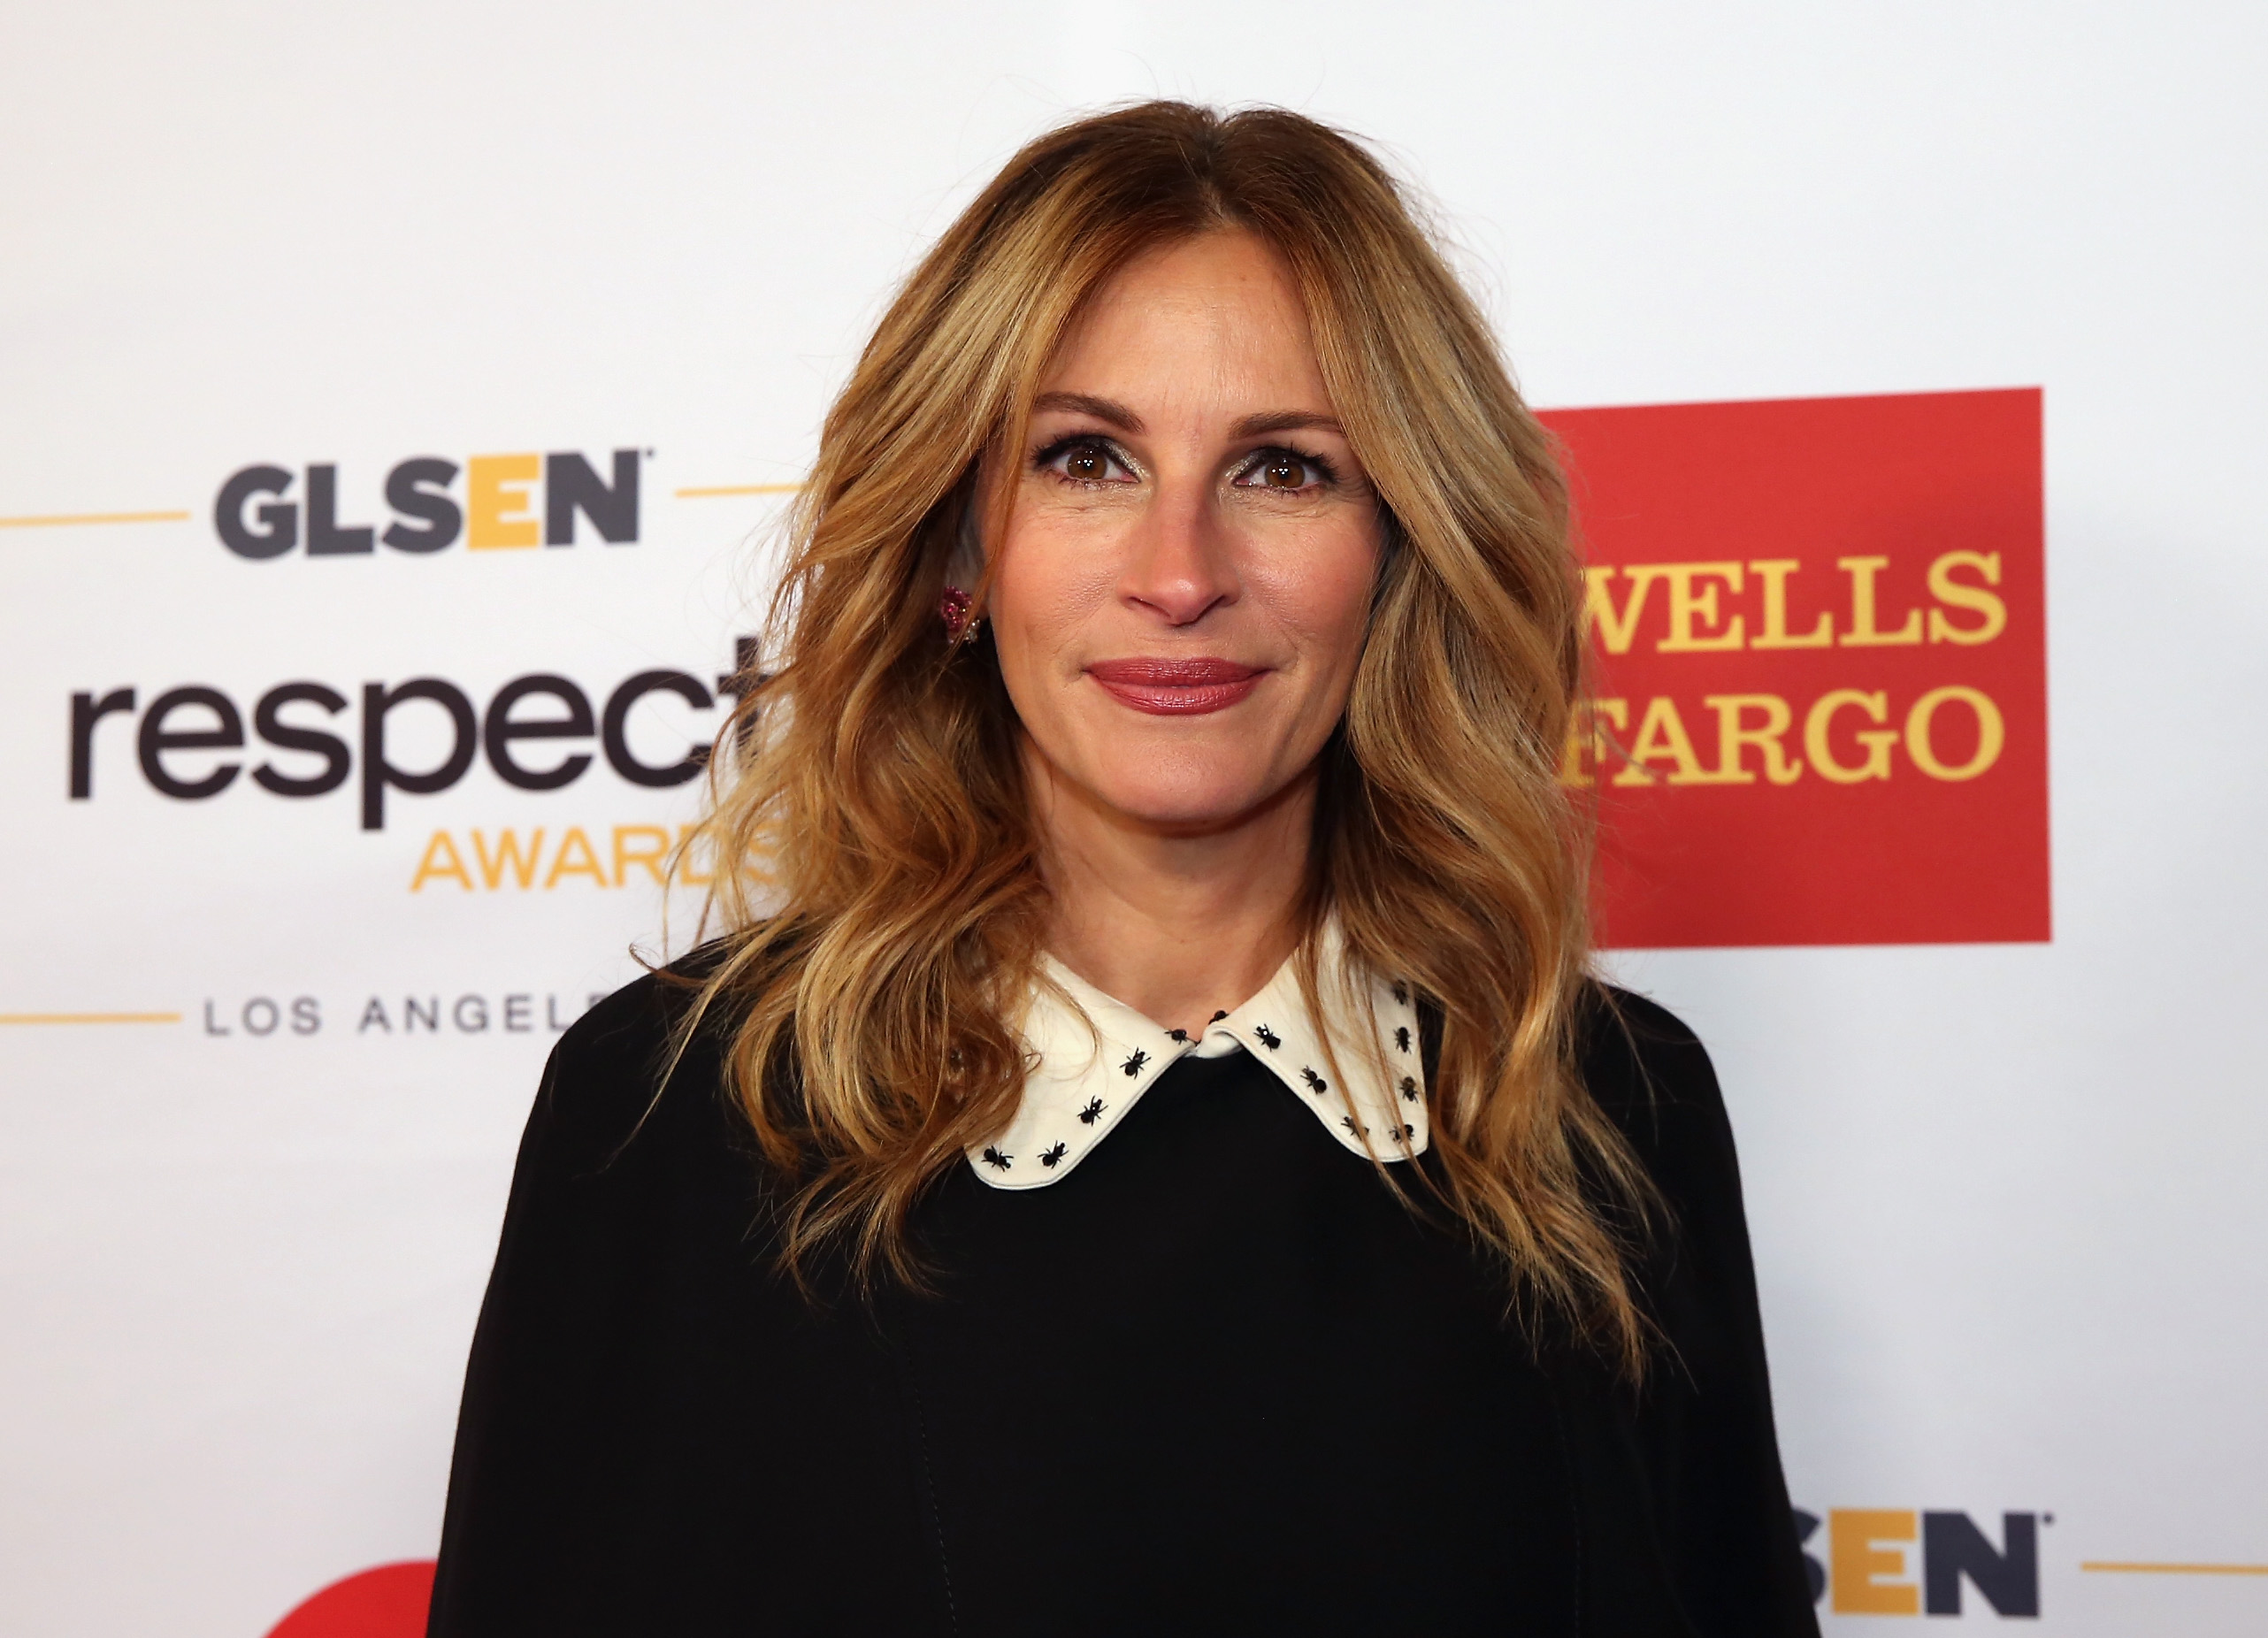 Queen Julia Roberts reenacted her entire film career in under 10 minutes